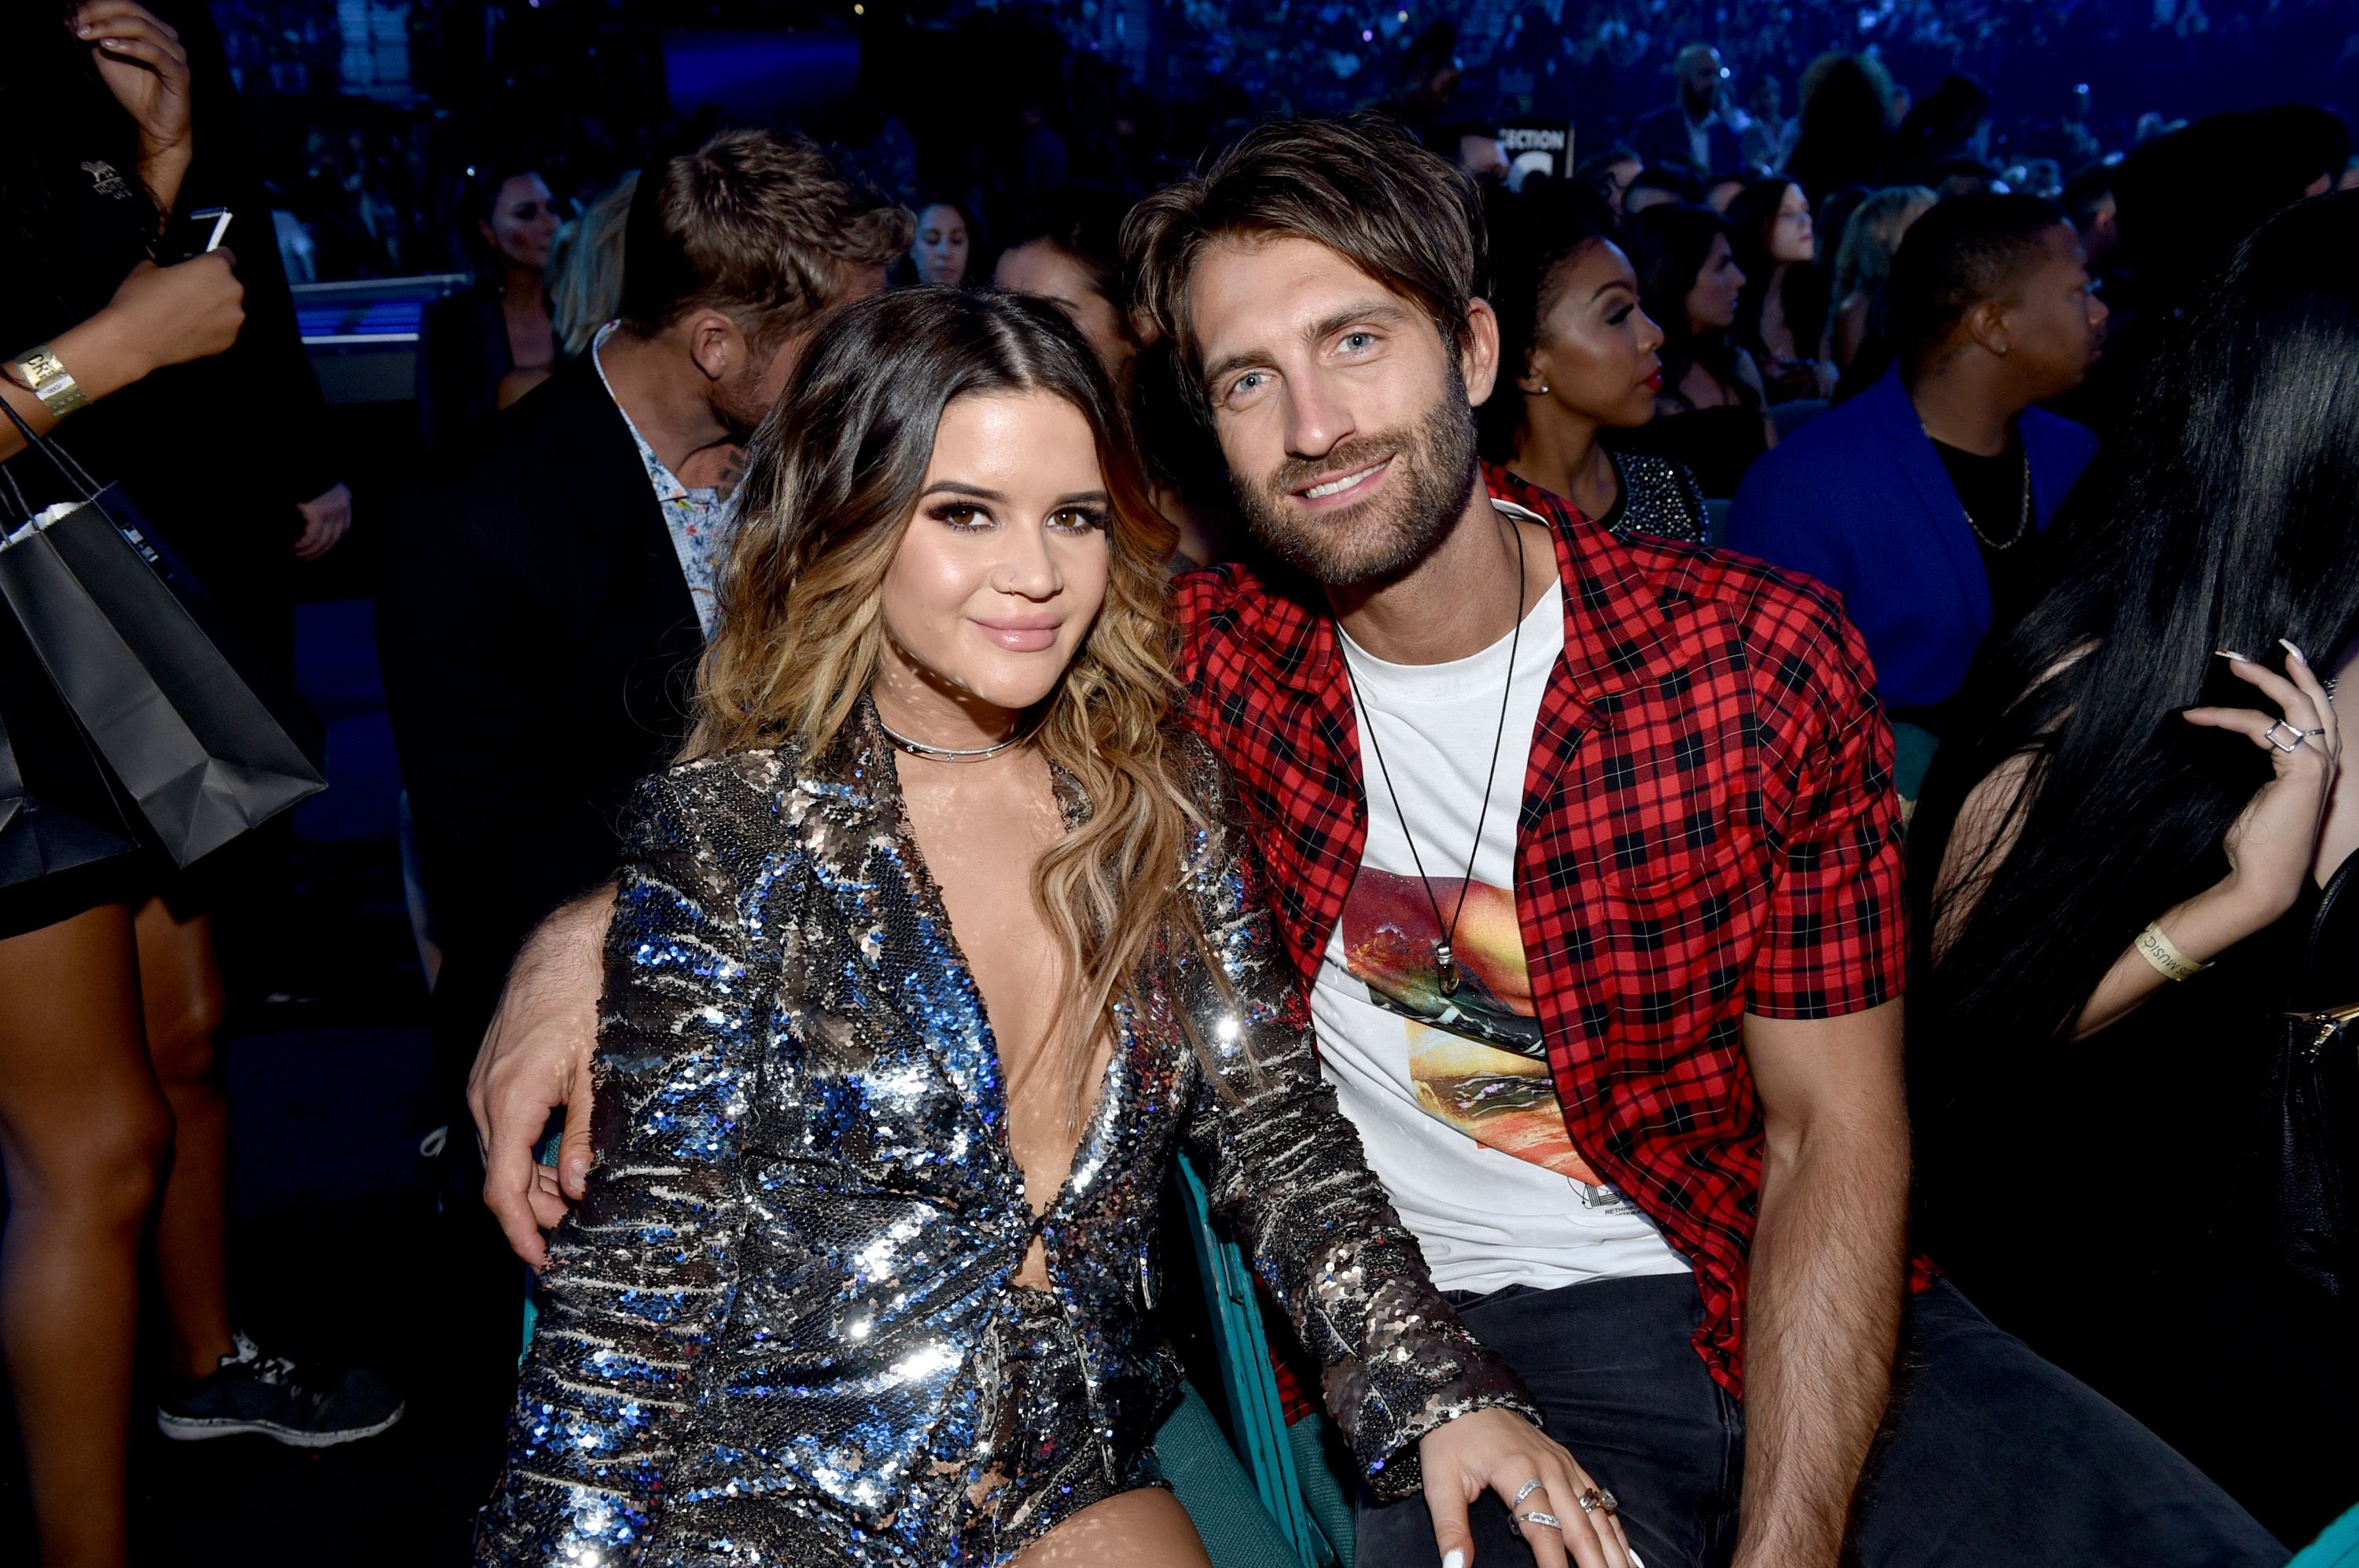 Maren Morris and Ryan Hurd during the 2018 Billboard Music Awards at MGM Grand Garden Arena on May 20, 2018 in Las Vegas, Nevada. | Source: Getty Images